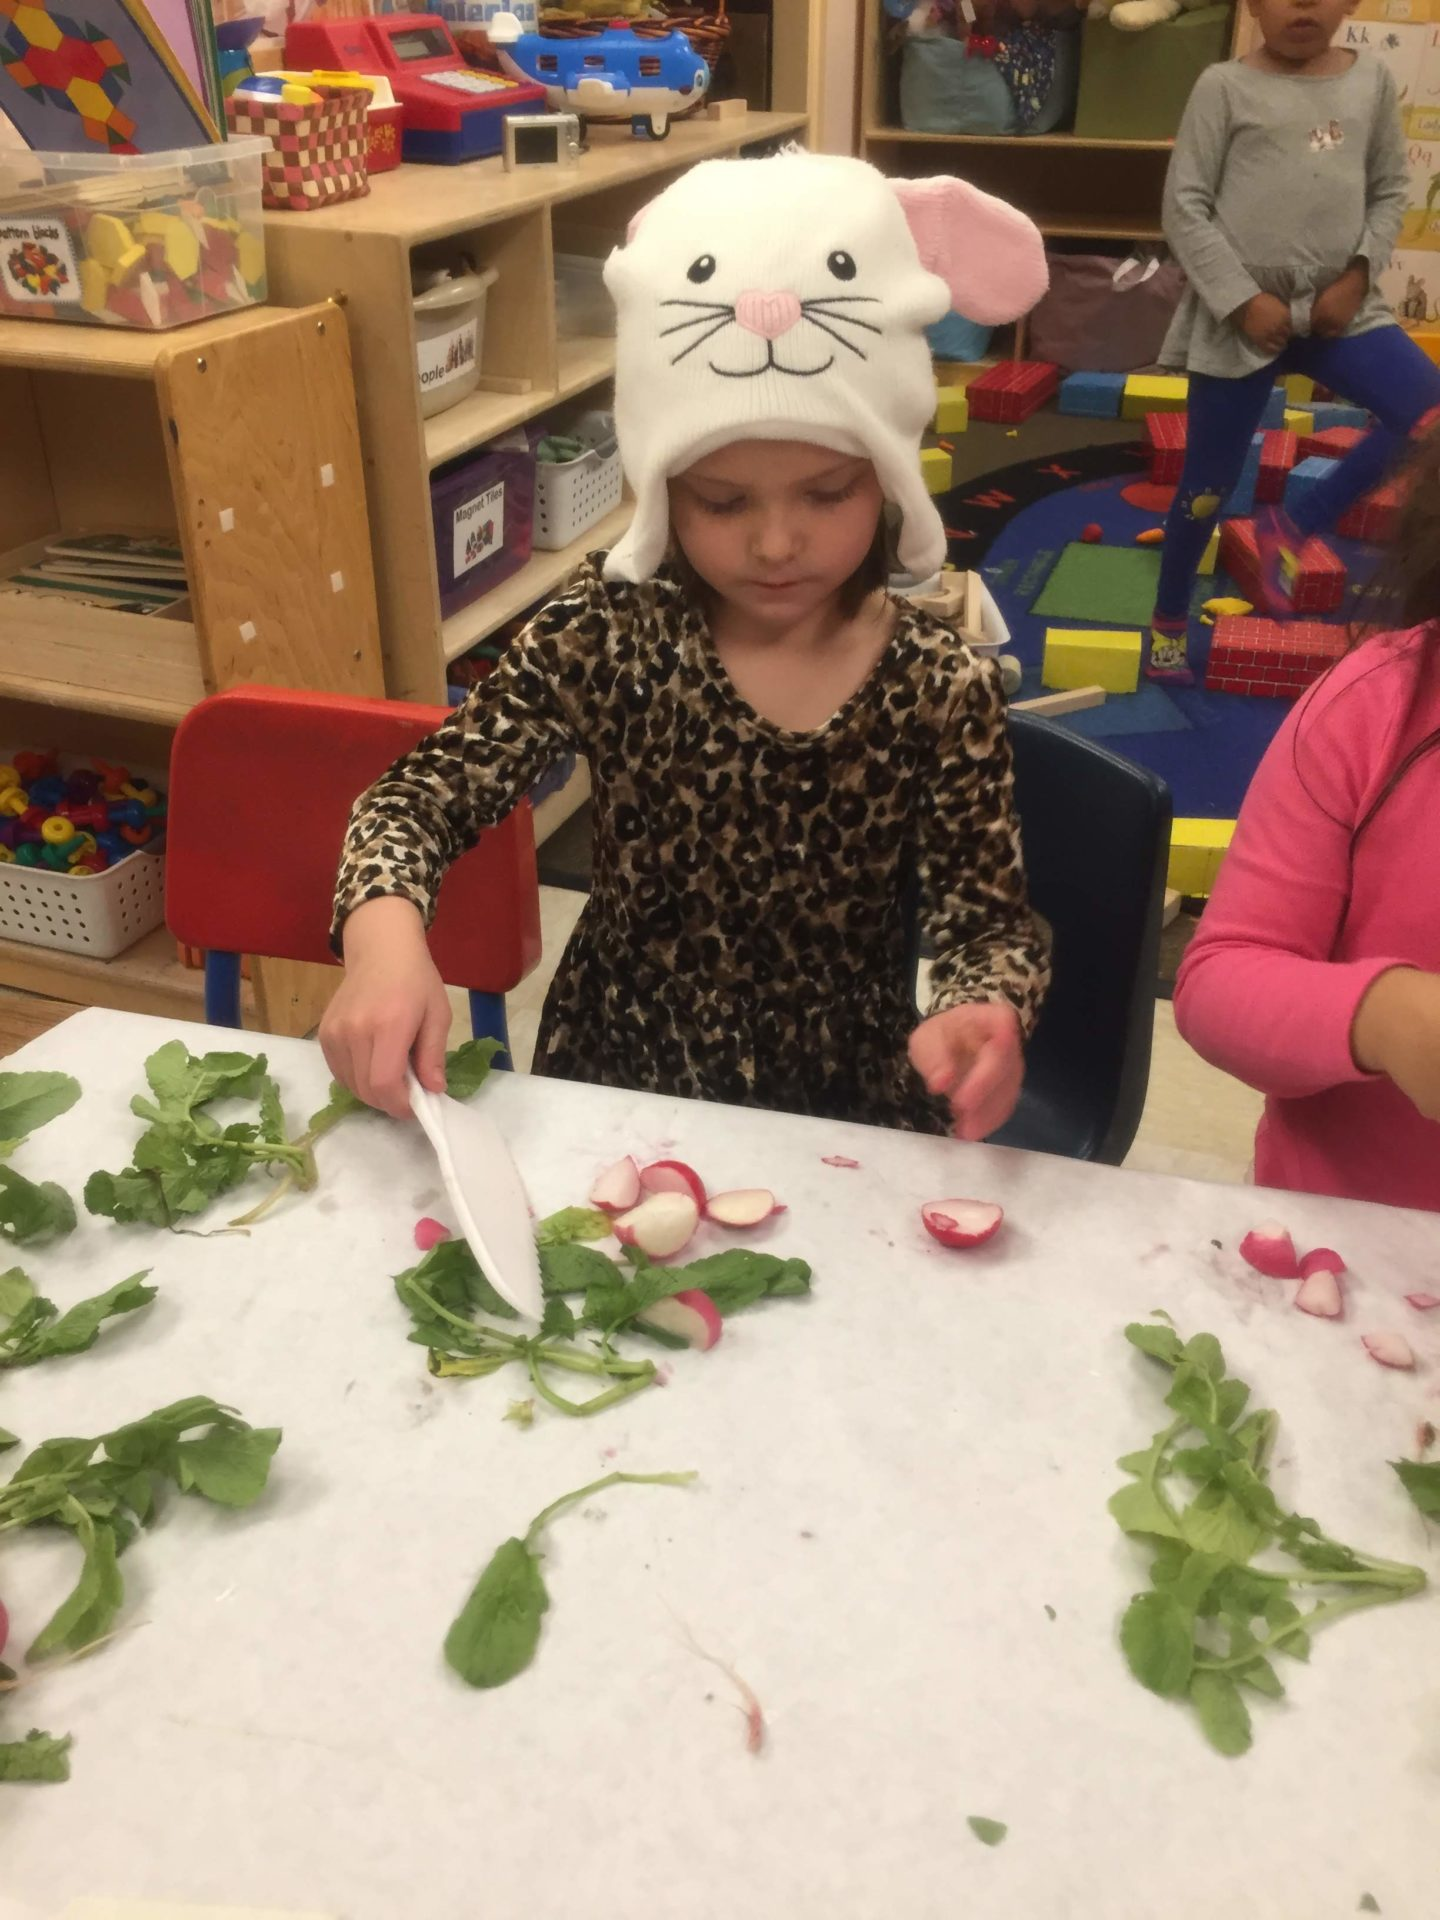 Child helps prepare a healthy meal at Children's Alley